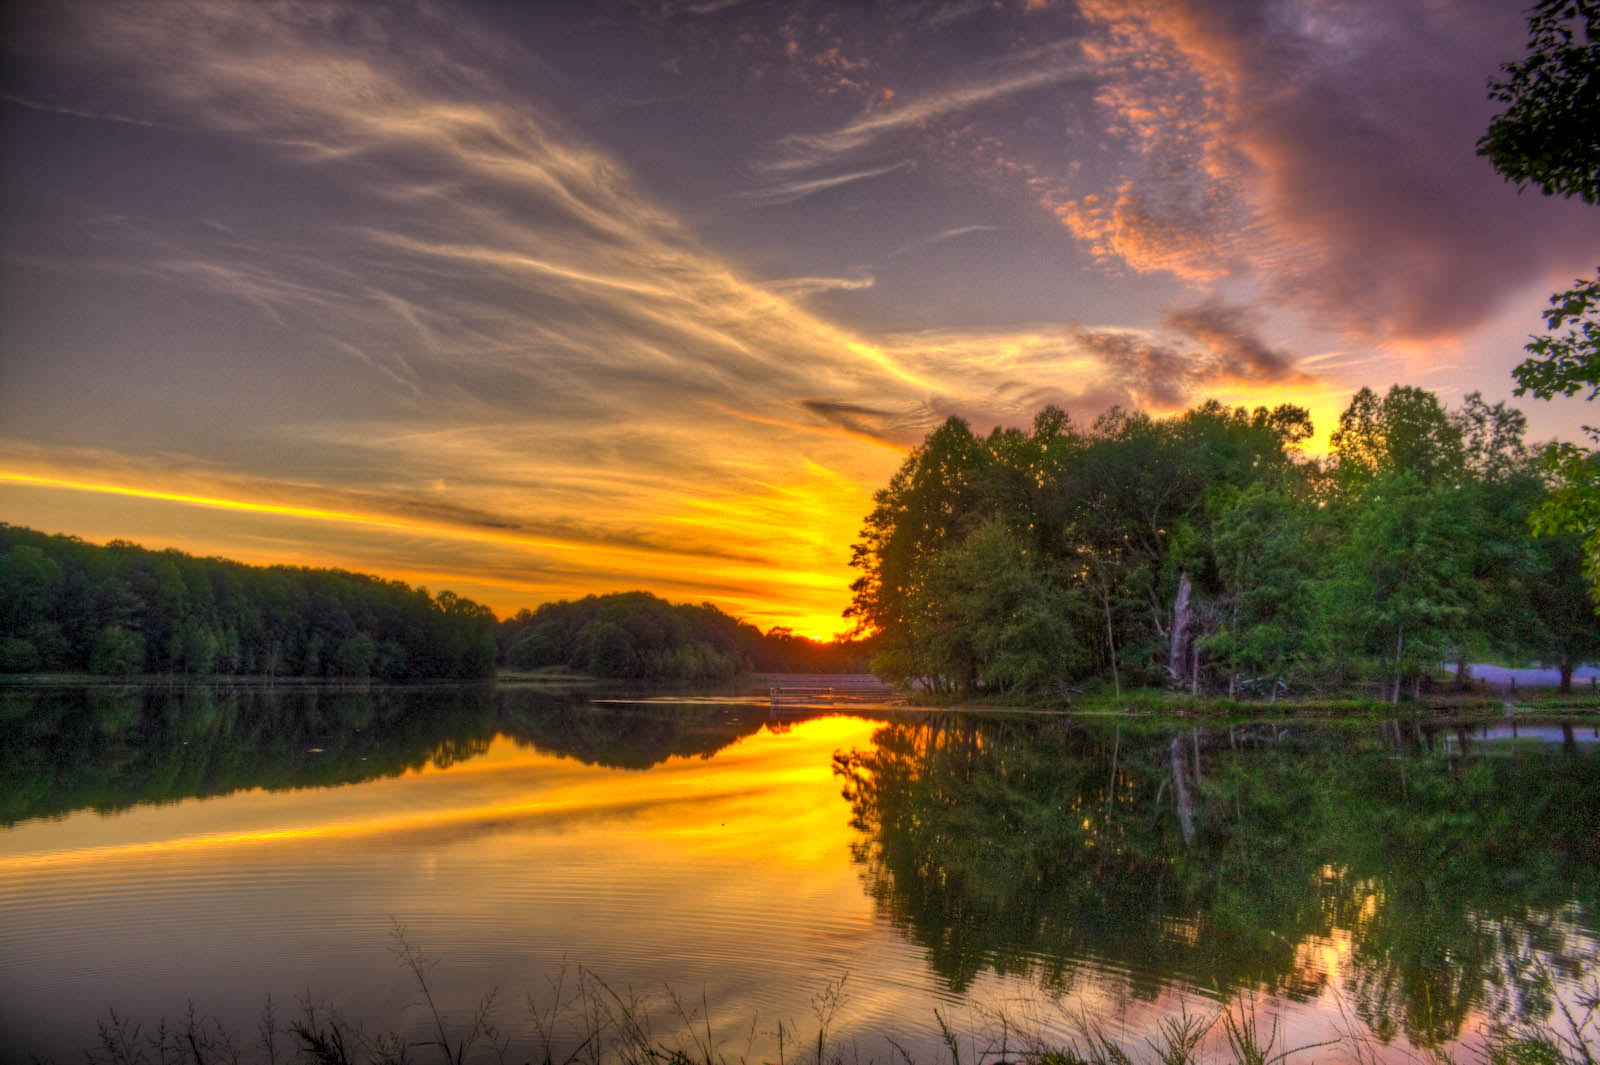 Photograph Sunset in Maryland by Ross Moore on 500px